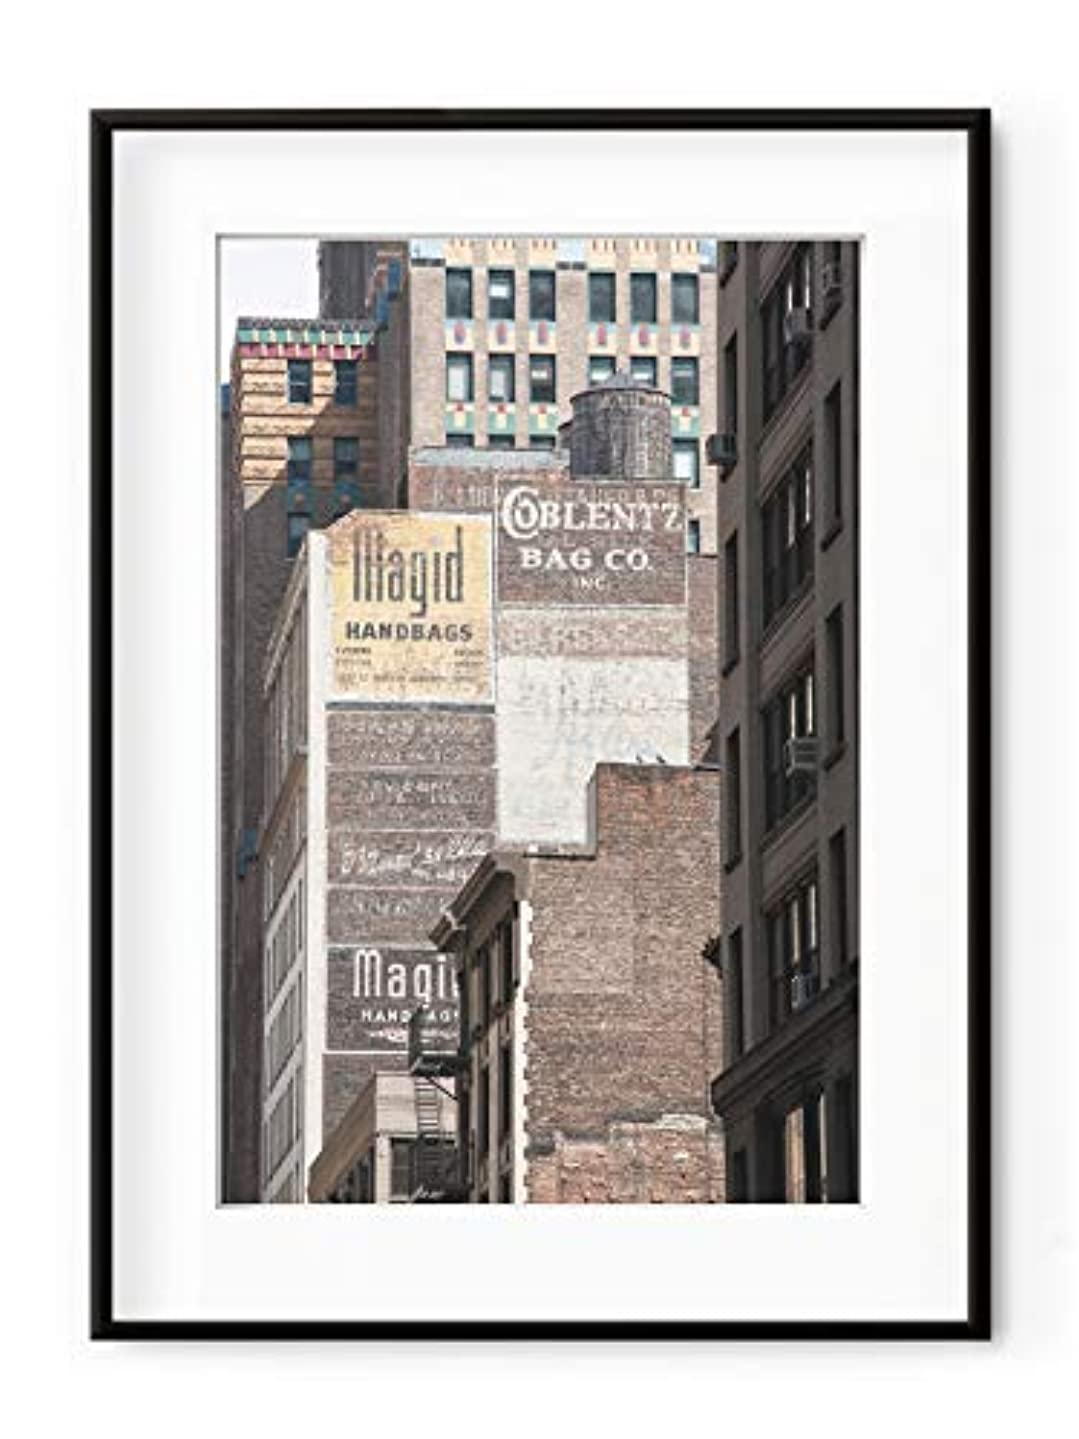 Manhattan Bricks Walls Aluminium Frame Black Satin Full Format, Multicolored, 30x40 rntaxzizhp068964